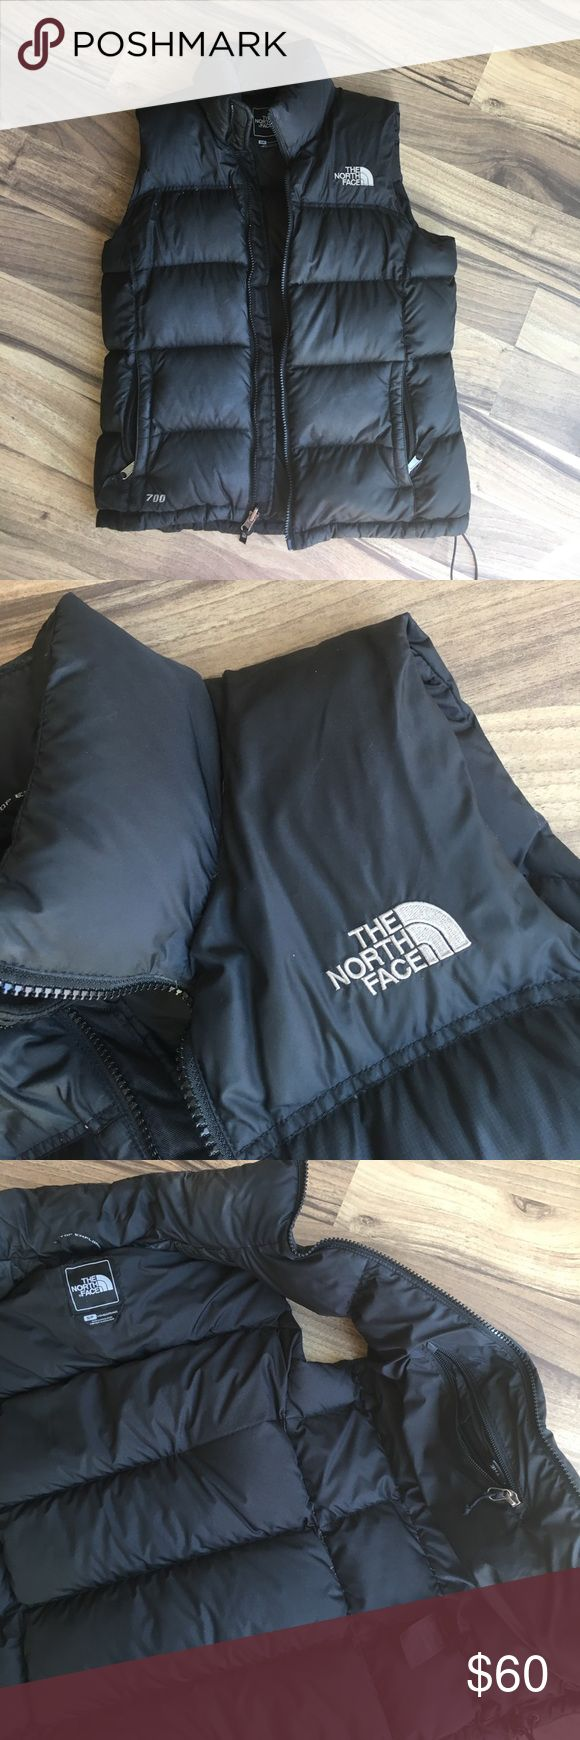 North Face Vest Black puffy North Face Vest. Size Small. Used condition. The North Face Jackets & Coats Vests